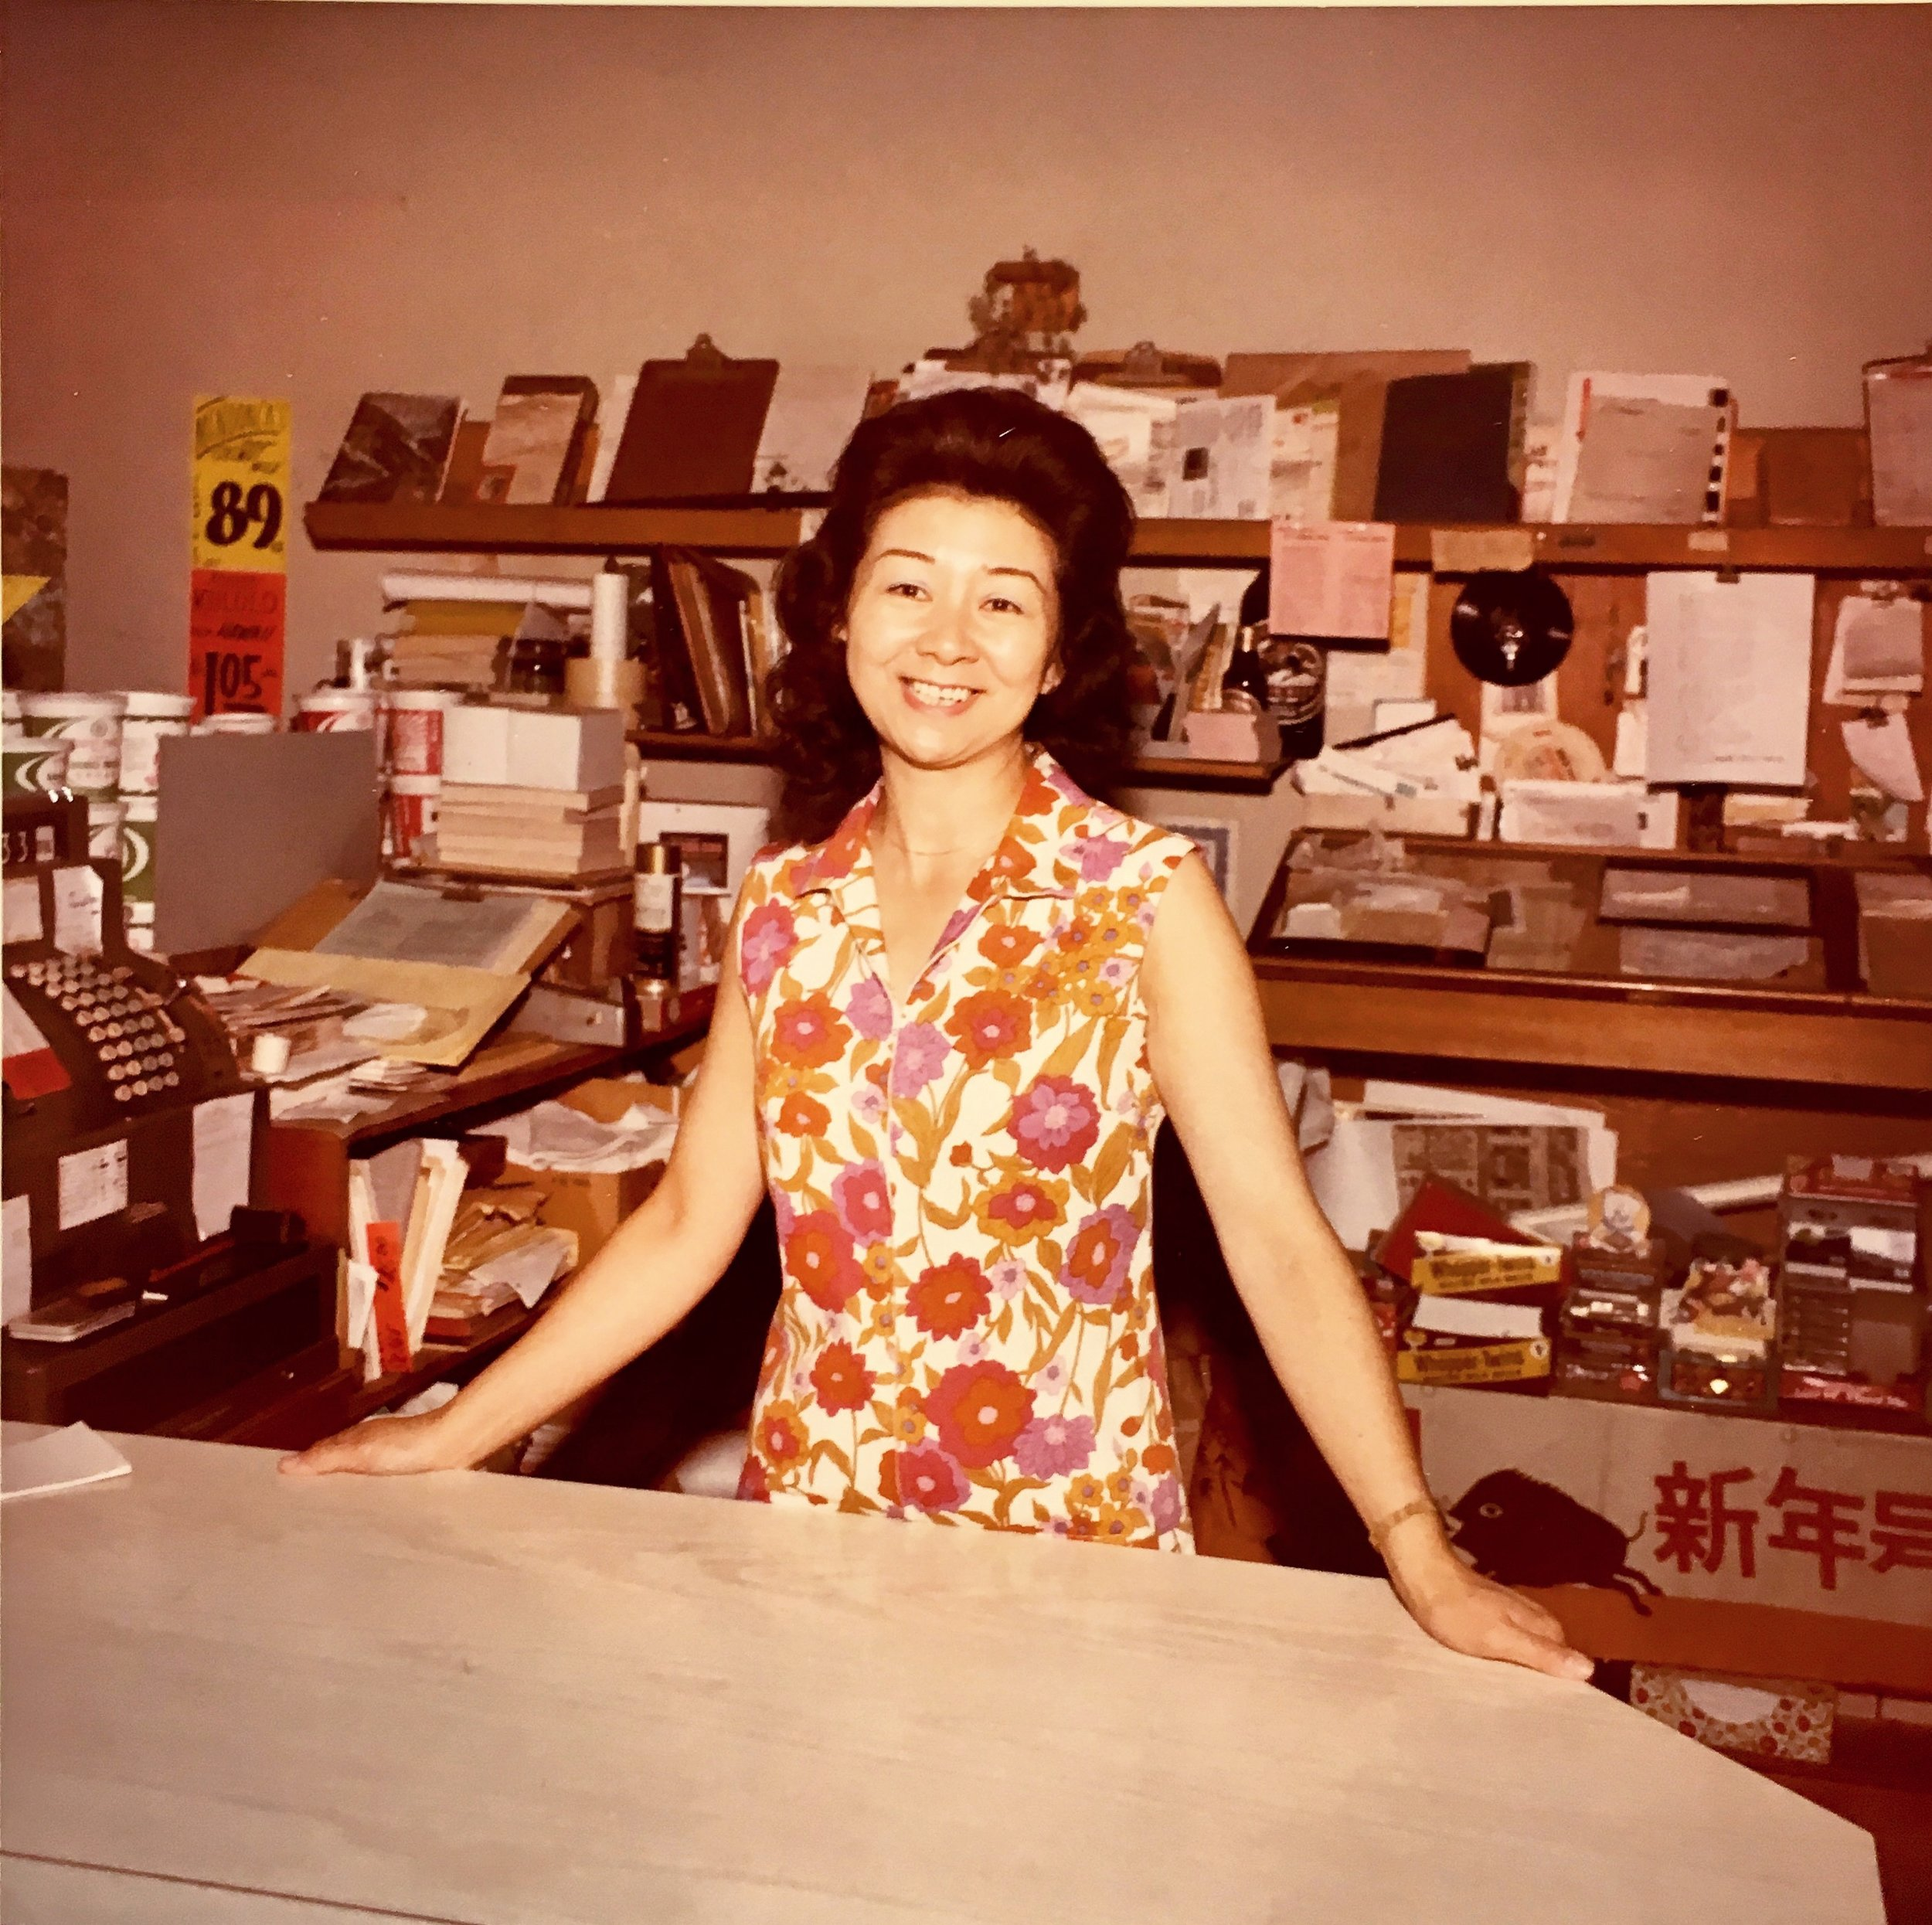 Mary behind the counter of her family business, Shi's Fish Mart